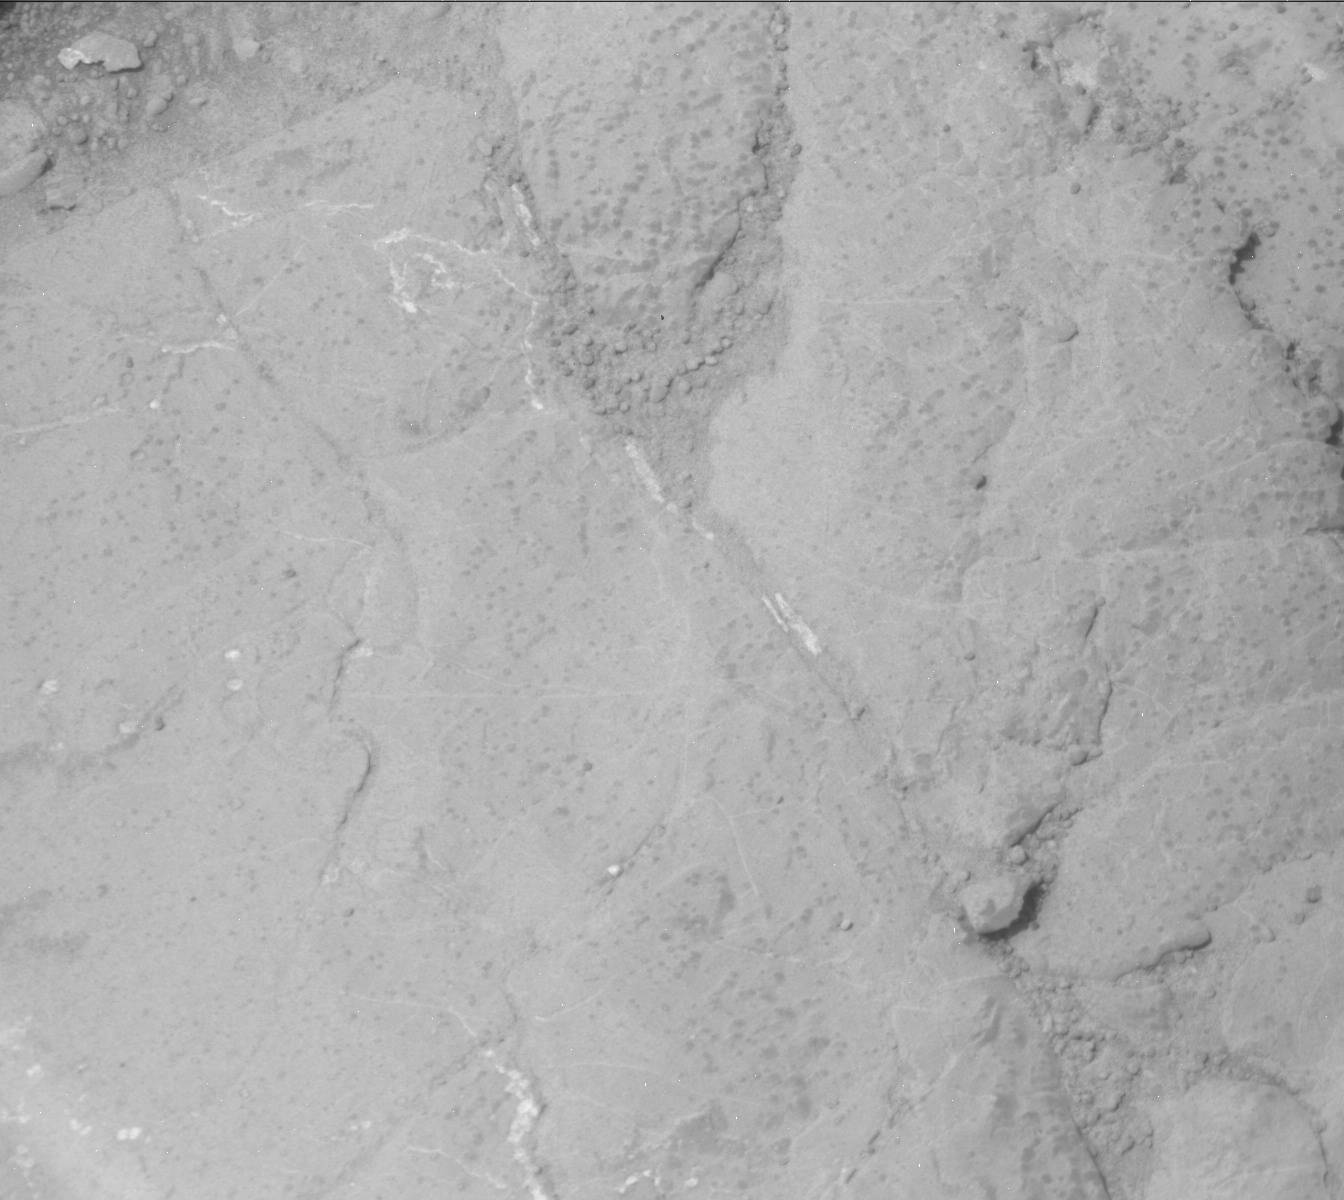 Nasa's Mars rover Curiosity acquired this image using its Mast Camera (Mastcam) on Sol 234